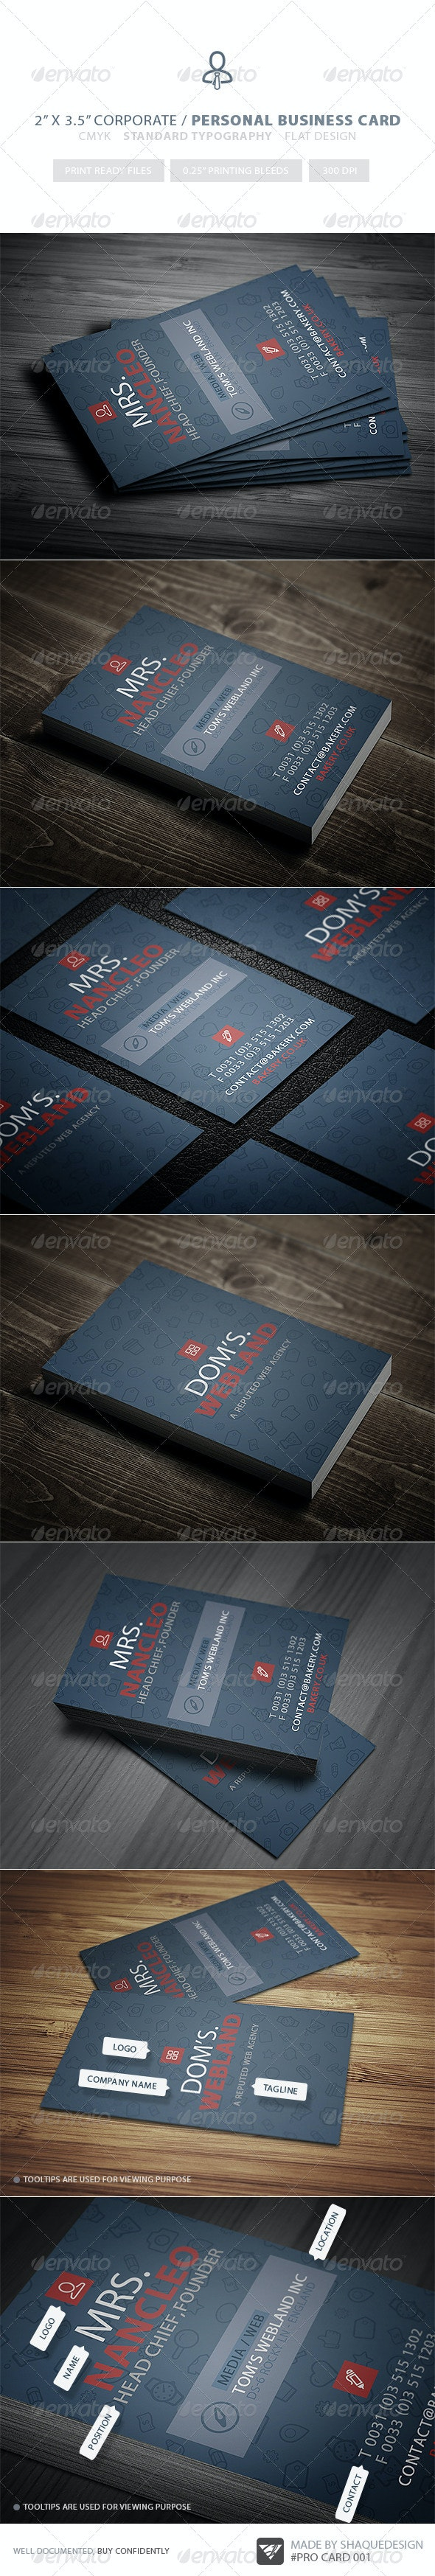 Corporate & Personal - Pro Business Card 001 - Corporate Business Cards